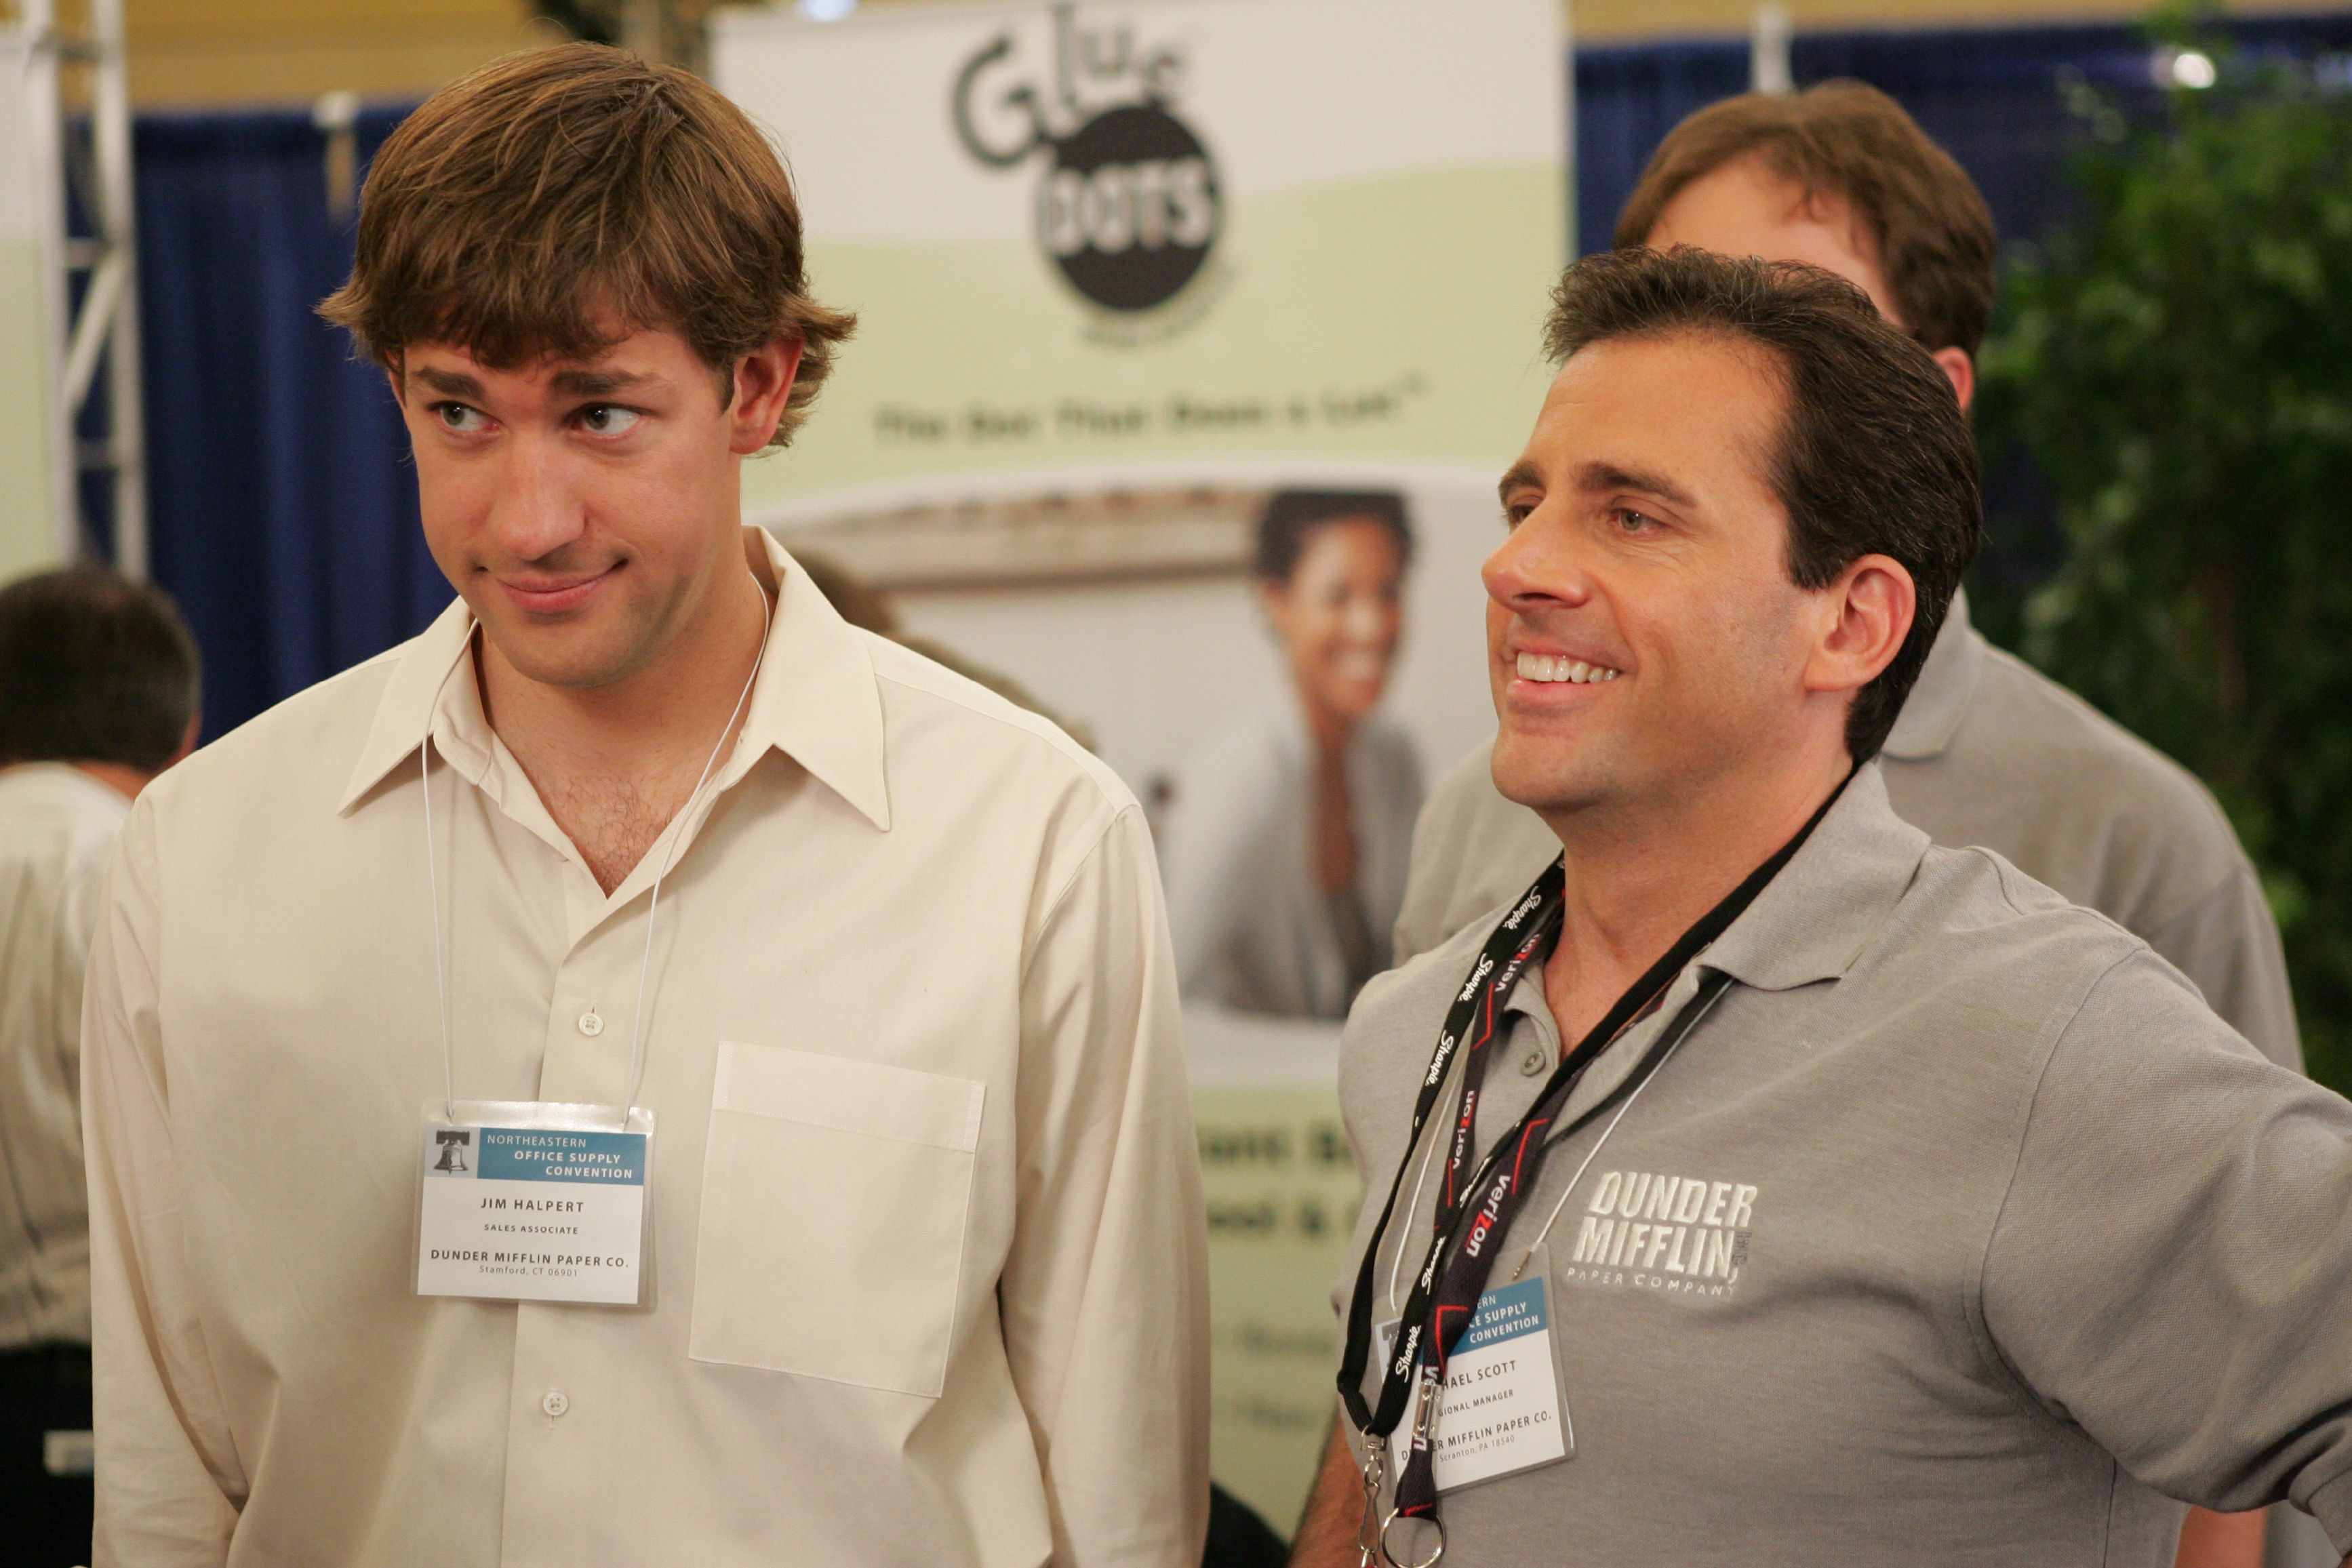 How to handle the awkwardness of networking (and maybe even dig it!)